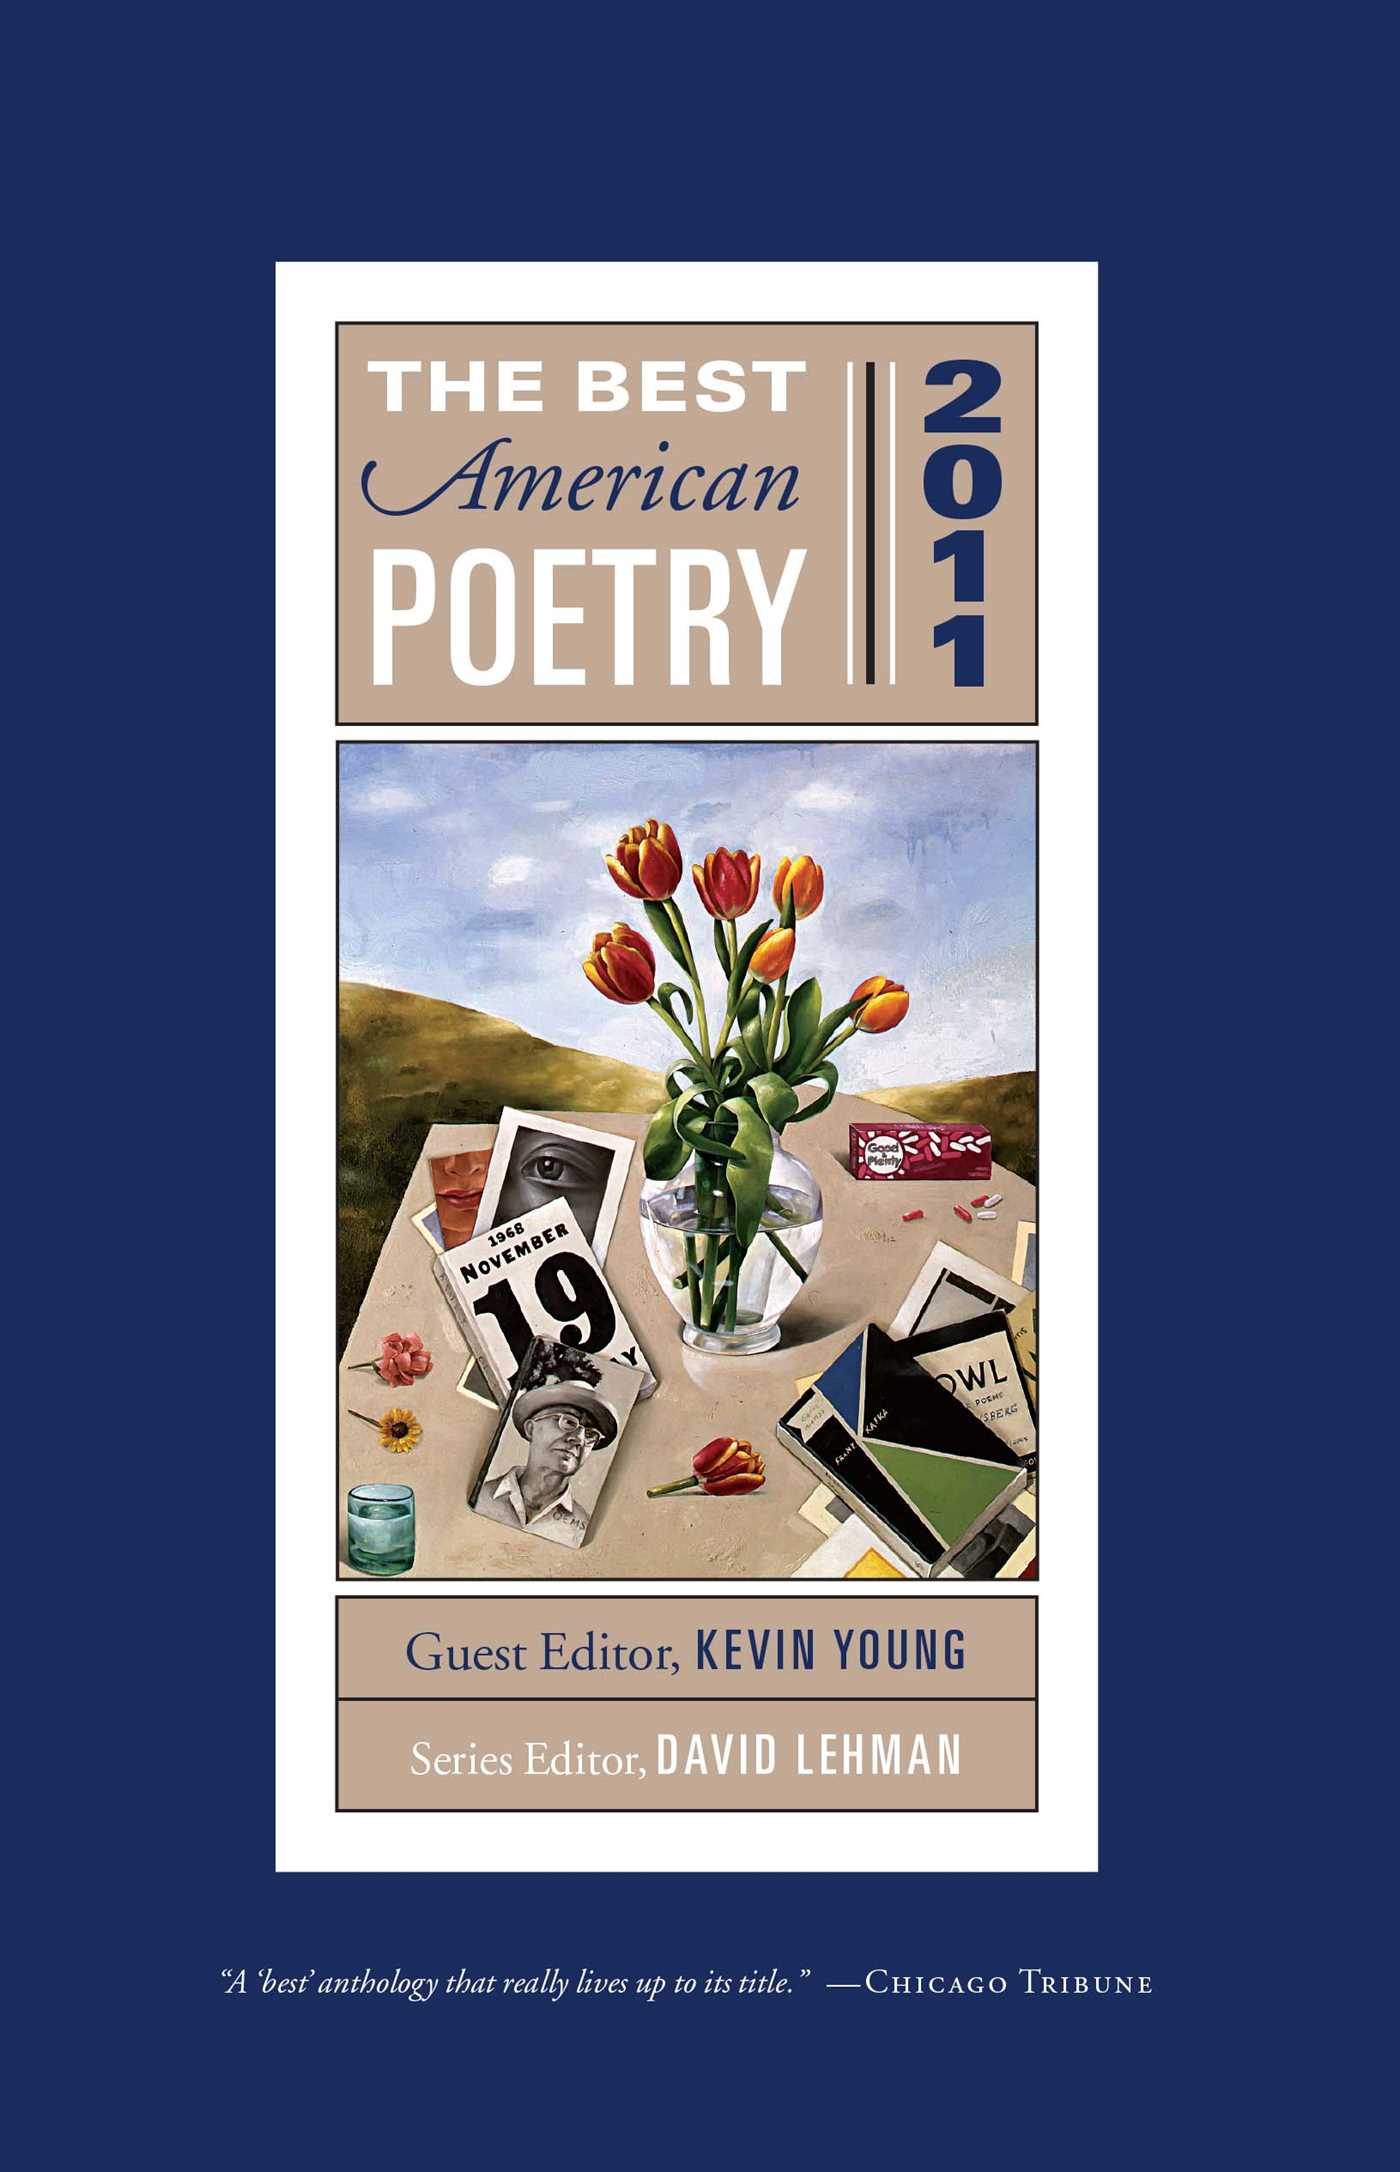 The best american poetry 2011 9781439181492 hr